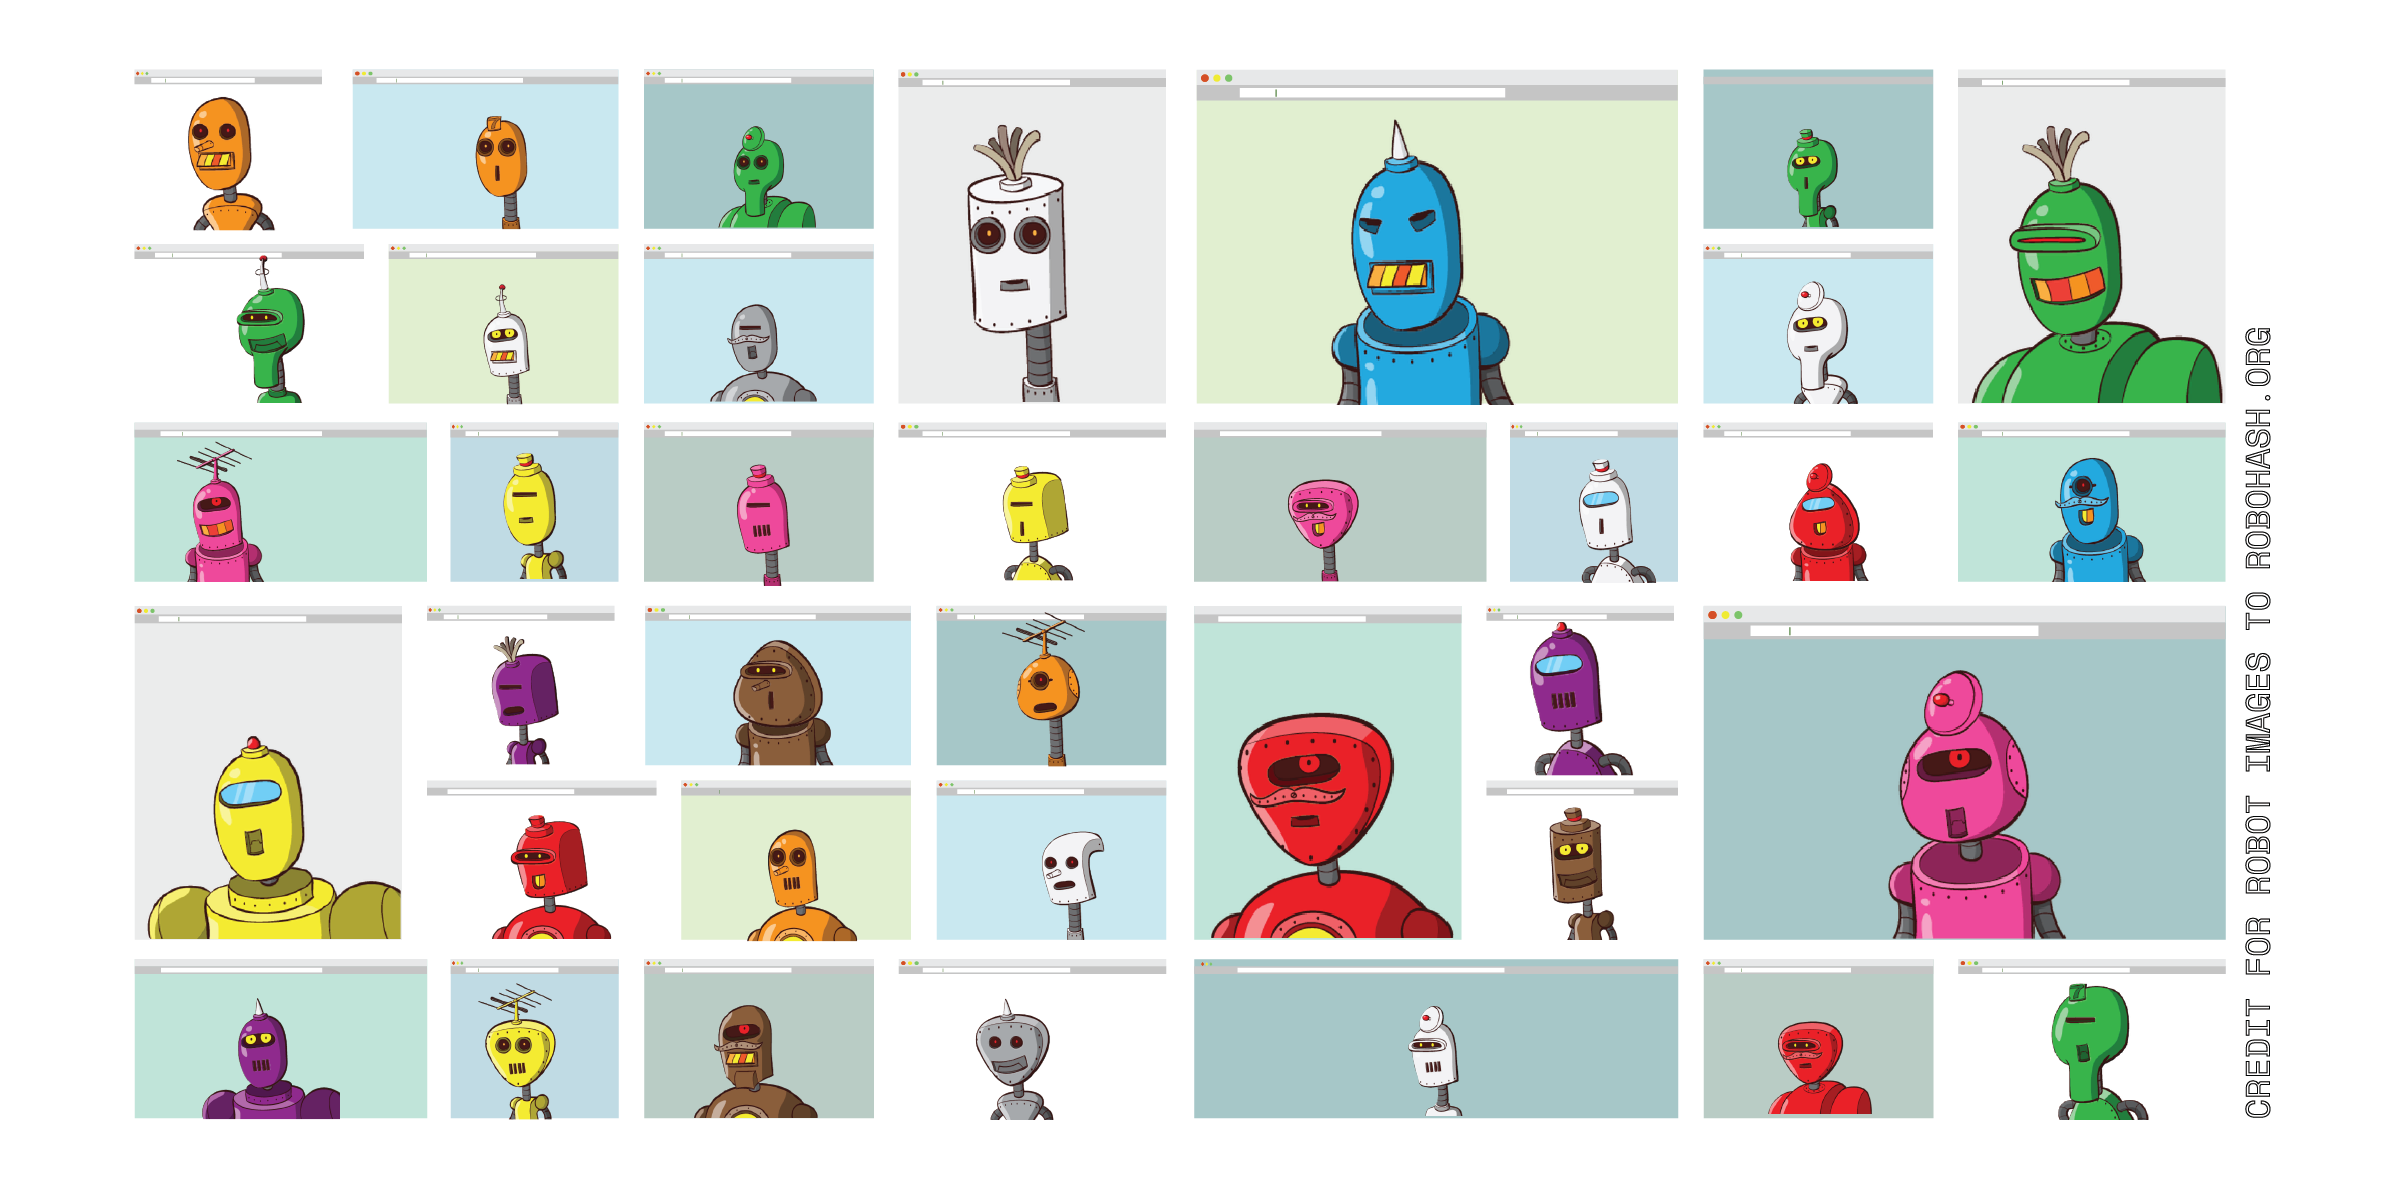 A grid of many different browser types with unique robots in each one.